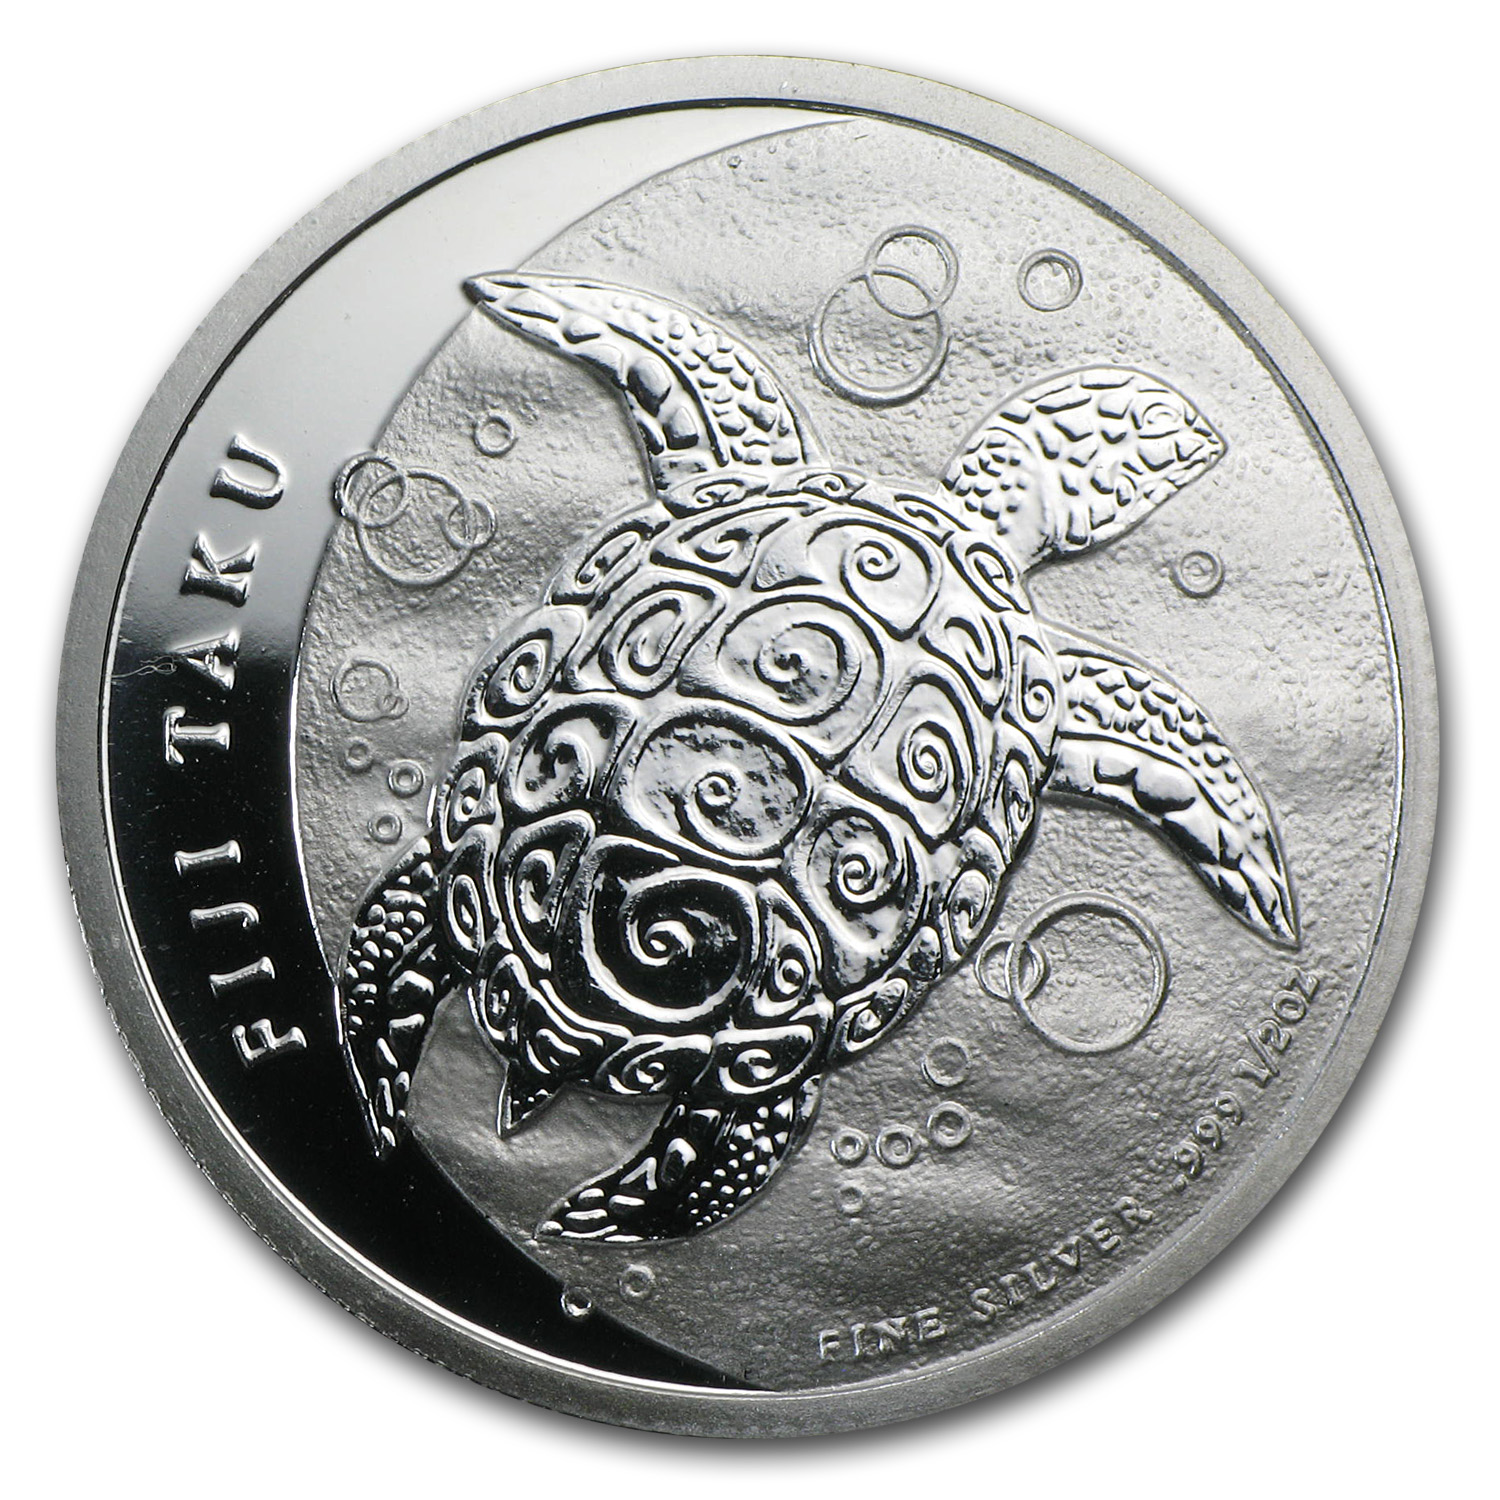 2013 1/2 oz Silver New Zealand Mint $1 Fiji Taku .999